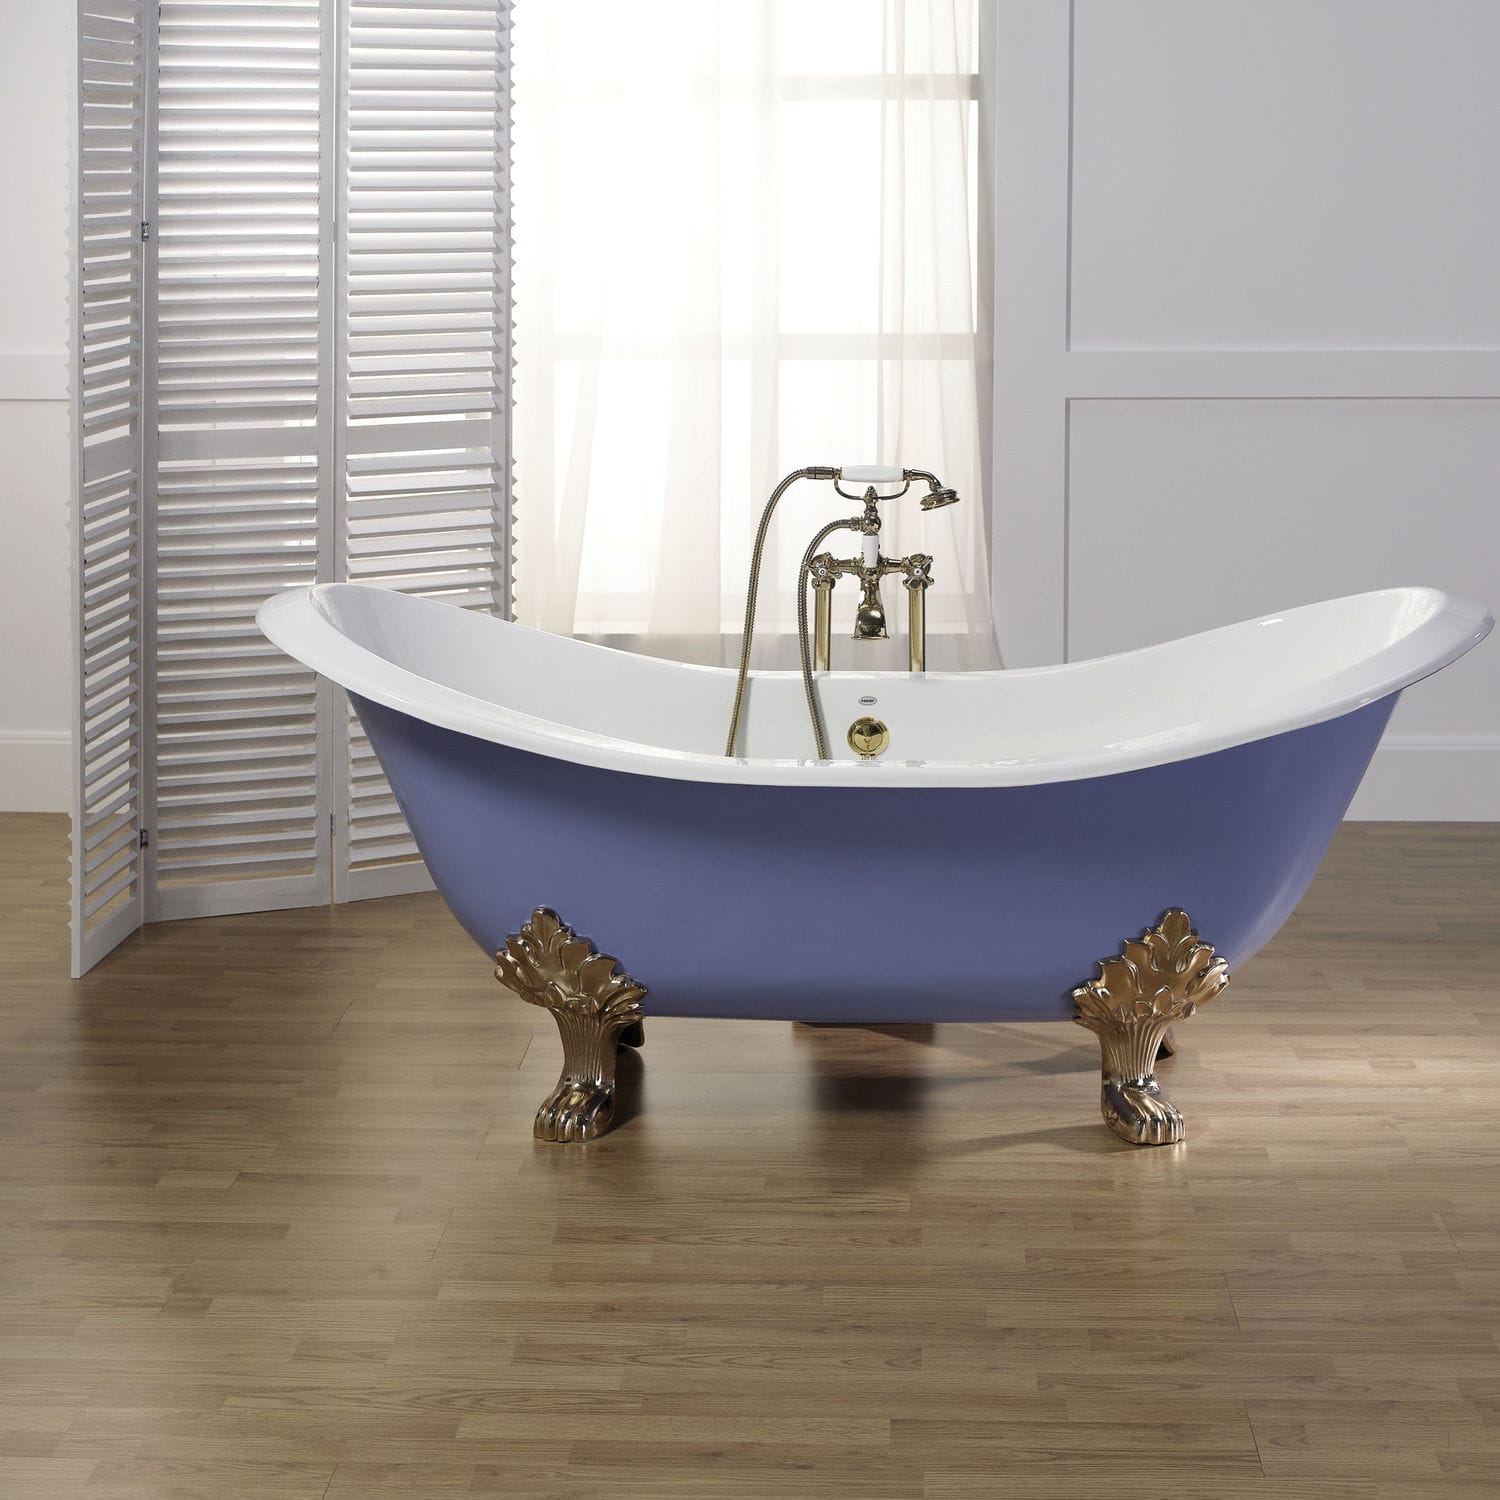 Bathtub with legs / oval / cast iron - ANTIQUE - RECOR